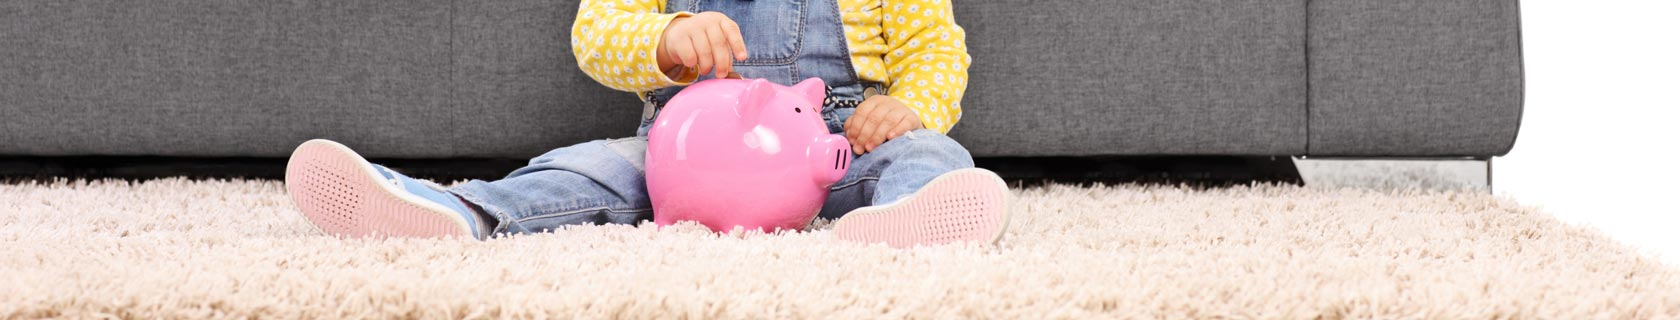 toddler in jean overalls putting a coin into a pink piggy bank